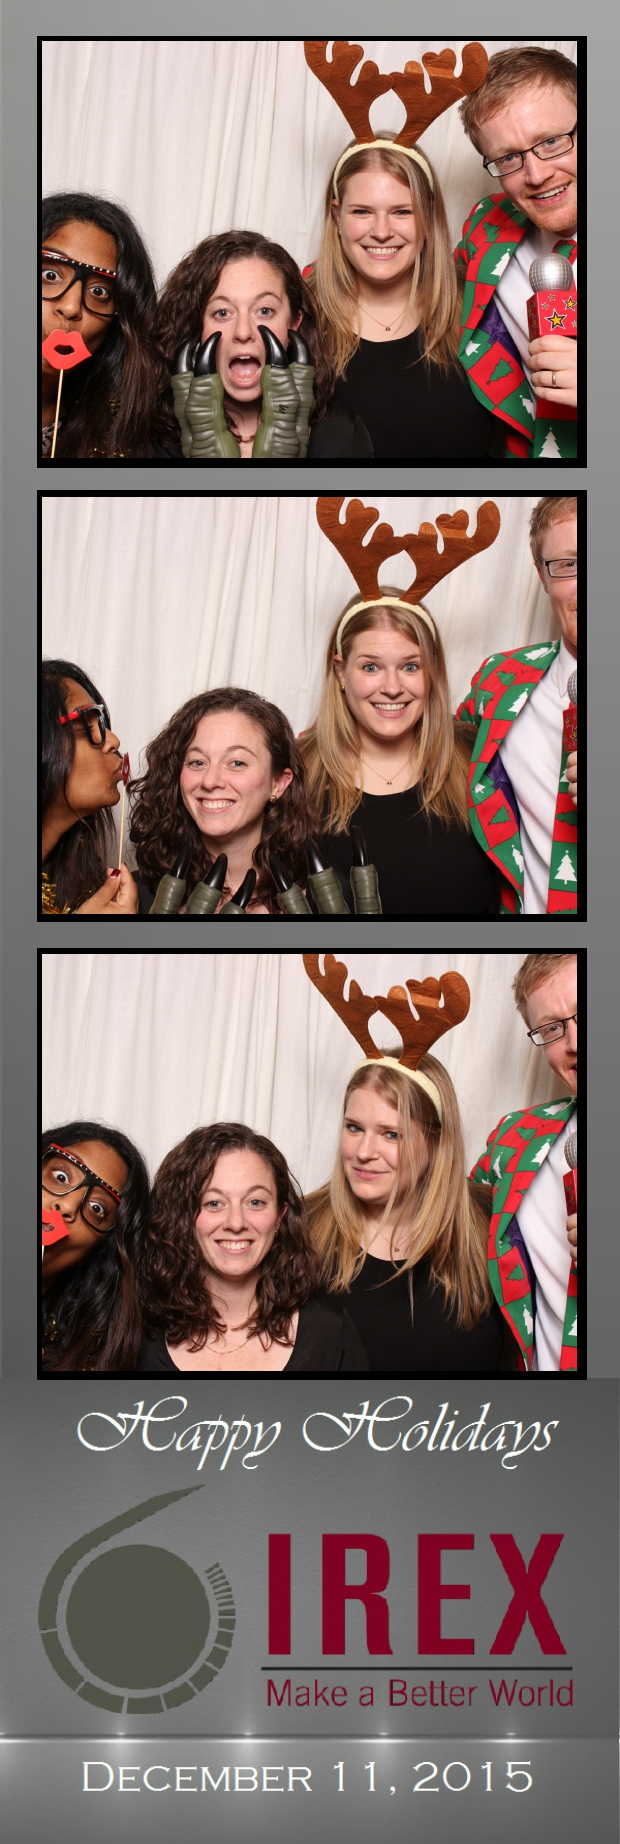 Guest House Events Photo Booth Strips IREX (2).jpg